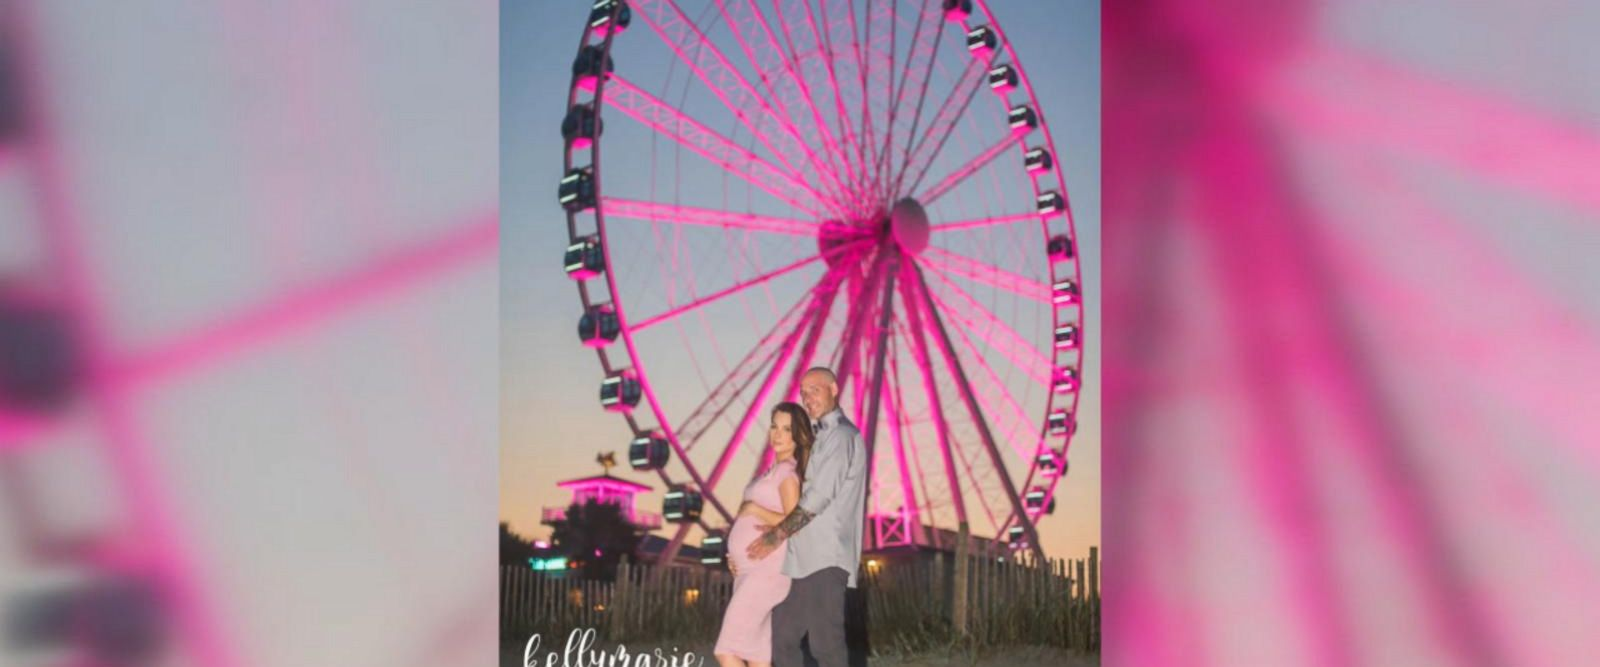 Matt Ostergaard arranged the grand gesture using the SkyWheel in Myrtle Beach, South Carolina, to announce the baby's gender to their friends and family.